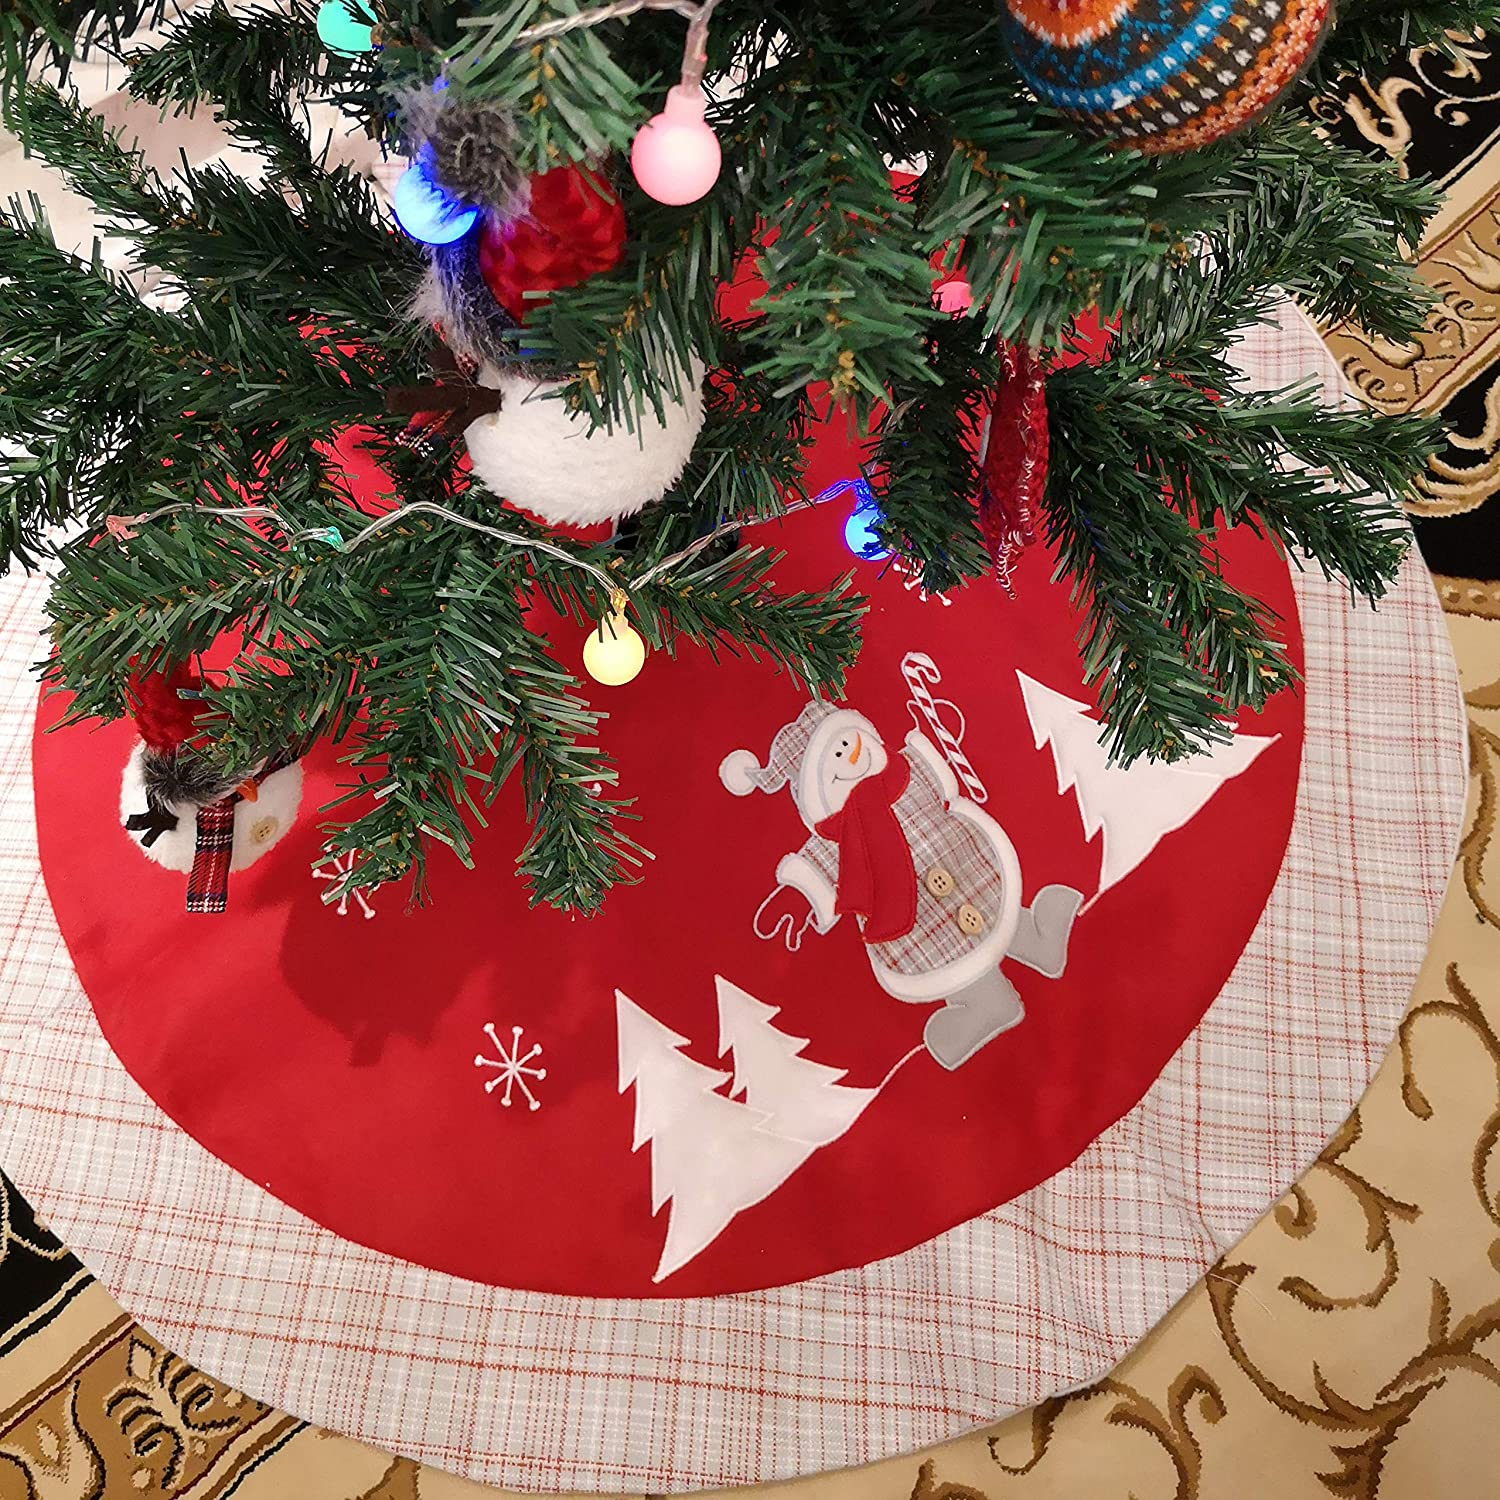 WEWILL 36'' Double Layers Thick Christmas Tree Skirt Red Felt with Classic White Trim Border Embroidered Santa Claus Snowflake Xmas Tree Skirt Holiday Decorations